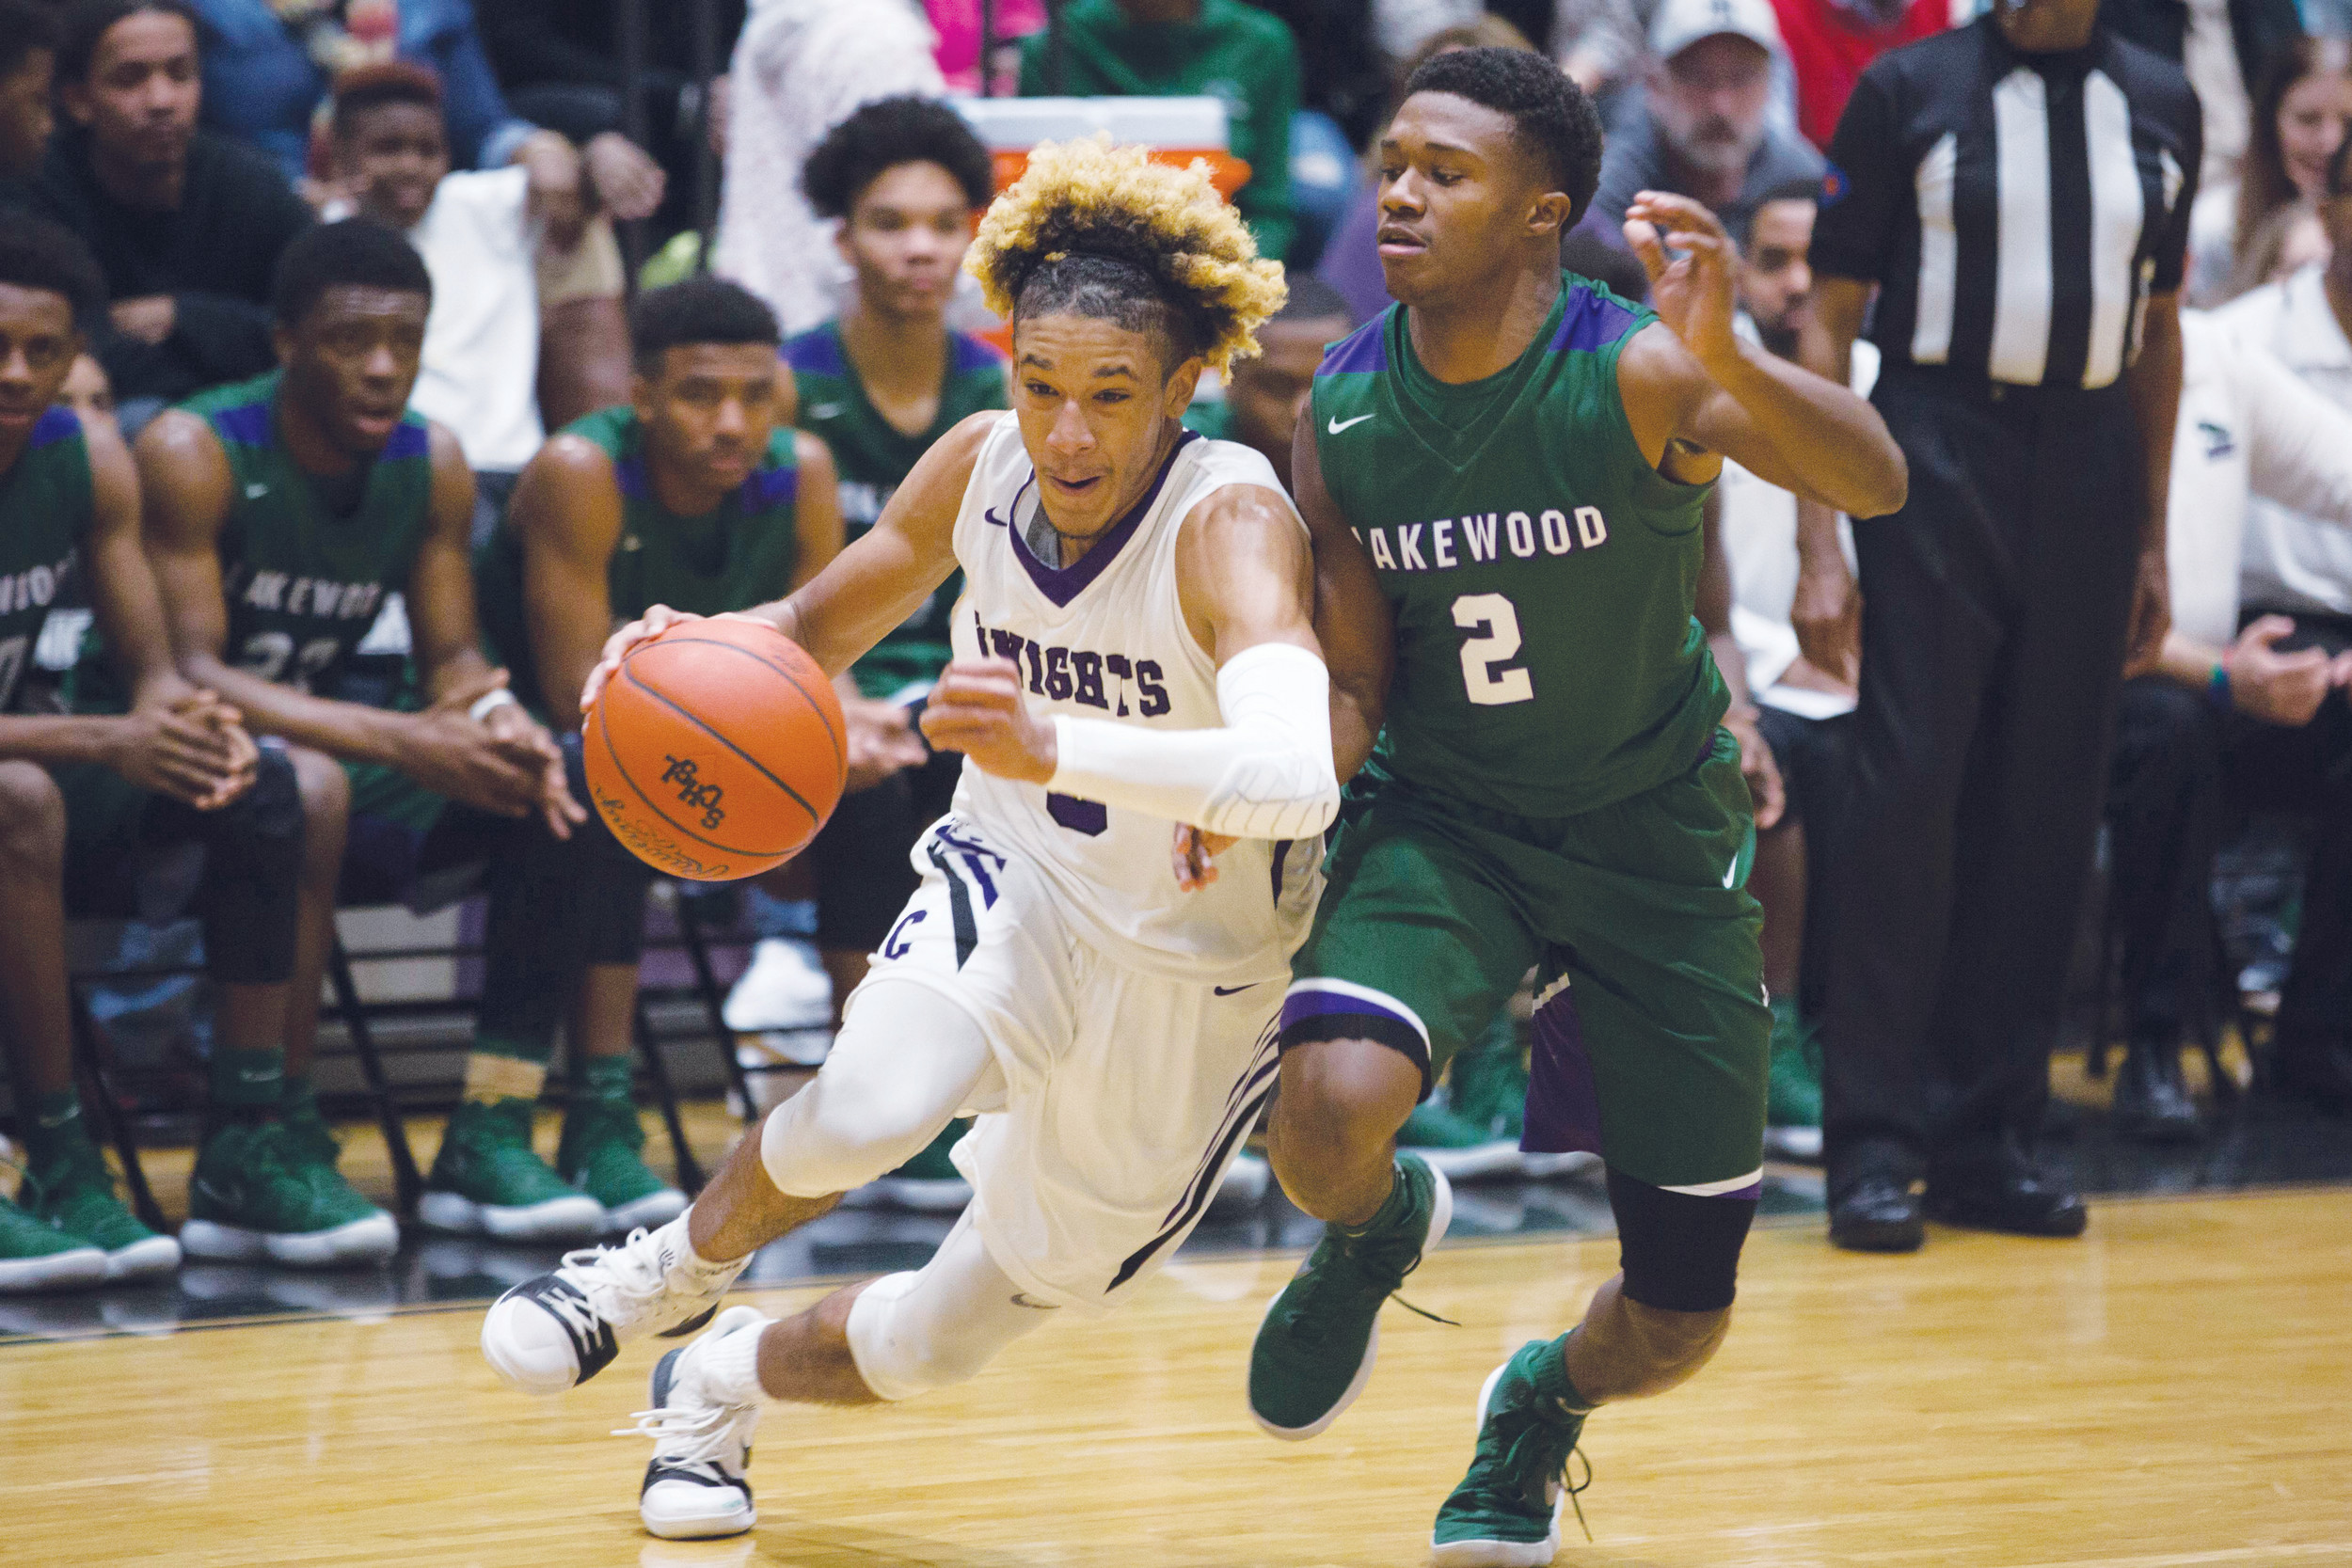 Crestwood's Nazir Andino, left, tries to get past Lakewood defender Jaron Richardson during the Gators' 54-42 victory over the Knights on Friday at The Castle.